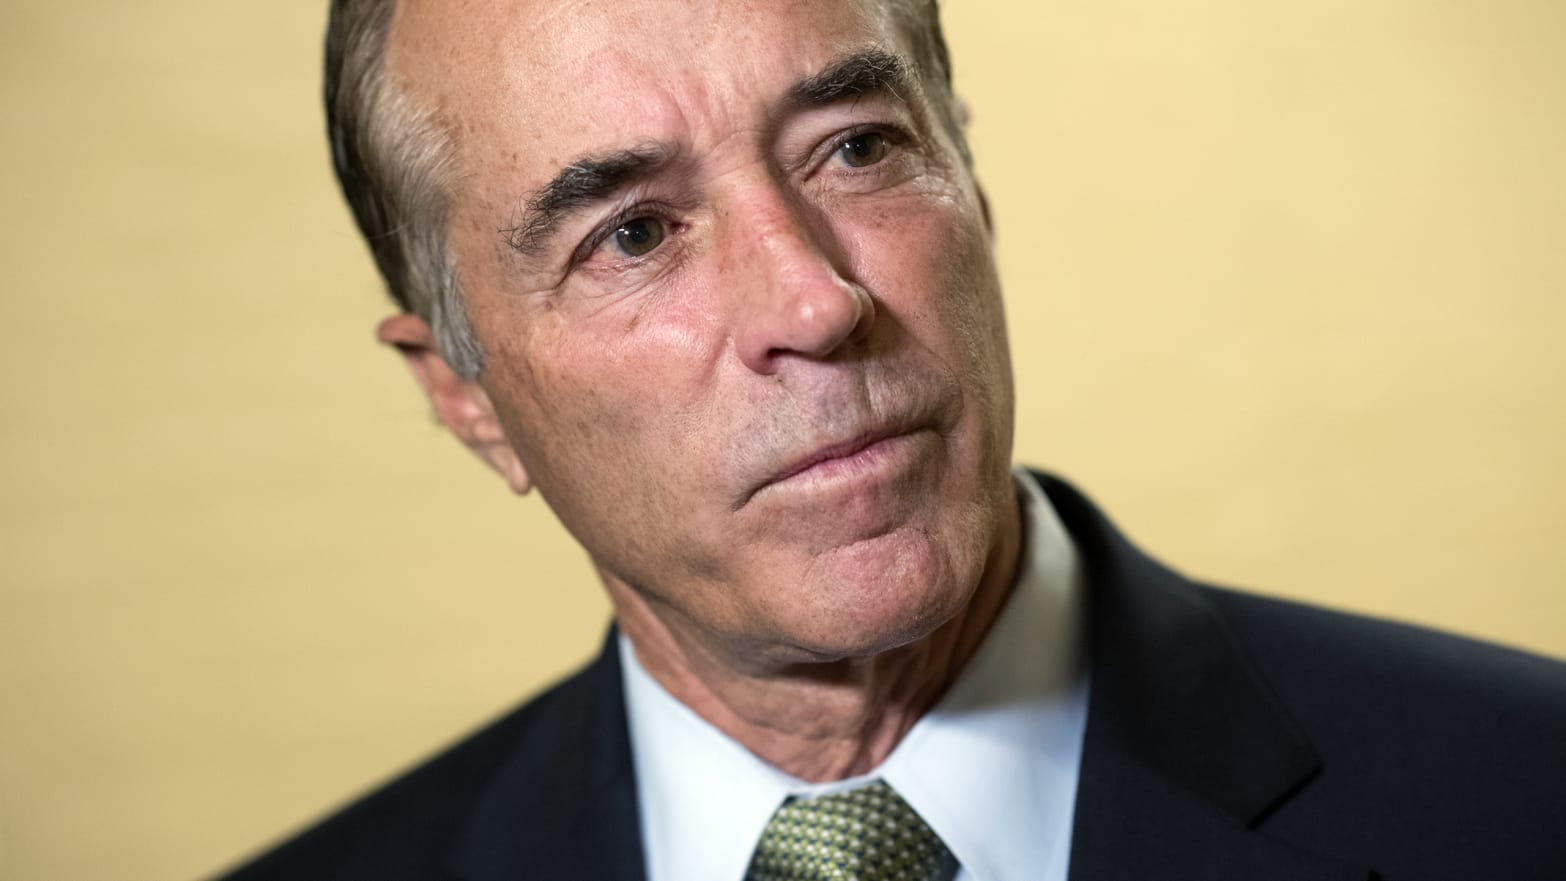 chris collins rep new york ny immunotherapy mis416 secondary progressive multiple sclerosis spms innate australia insider trading fraud